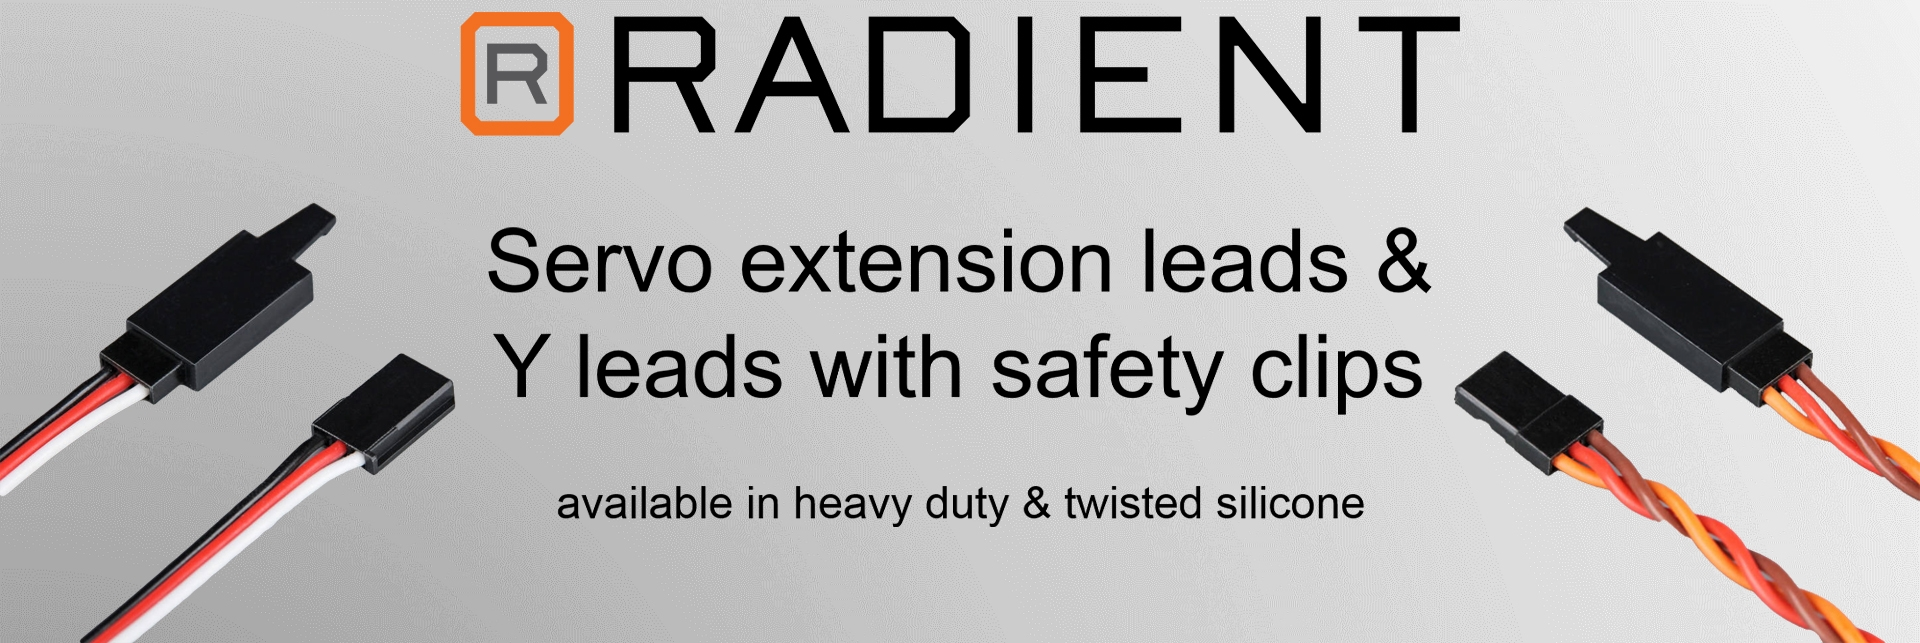 Radient Extension Leads